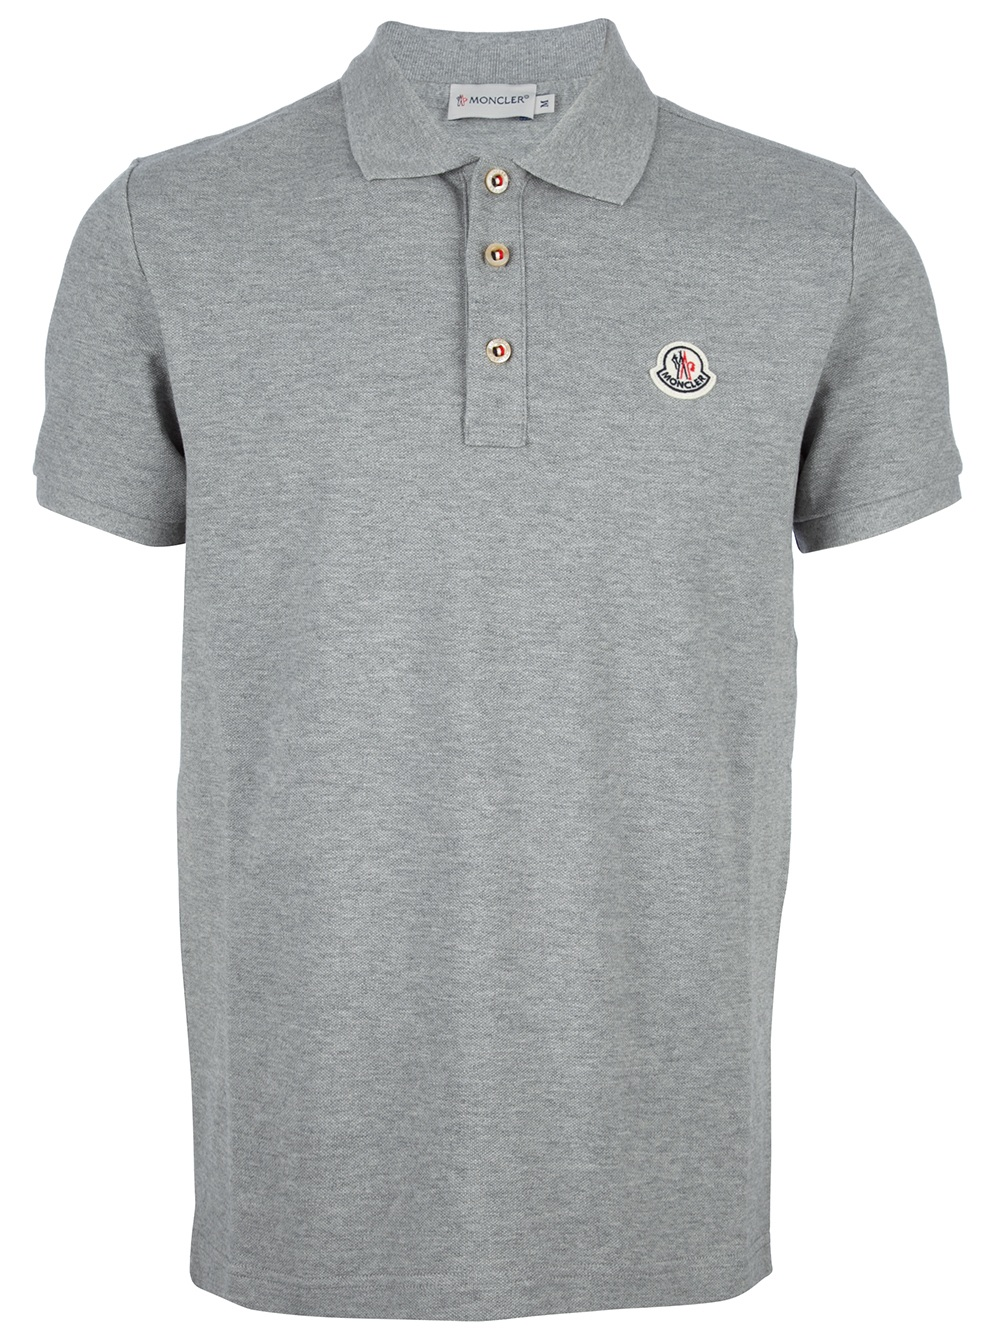 Moncler Classic Polo Shirt In Gray For Men Grey Lyst